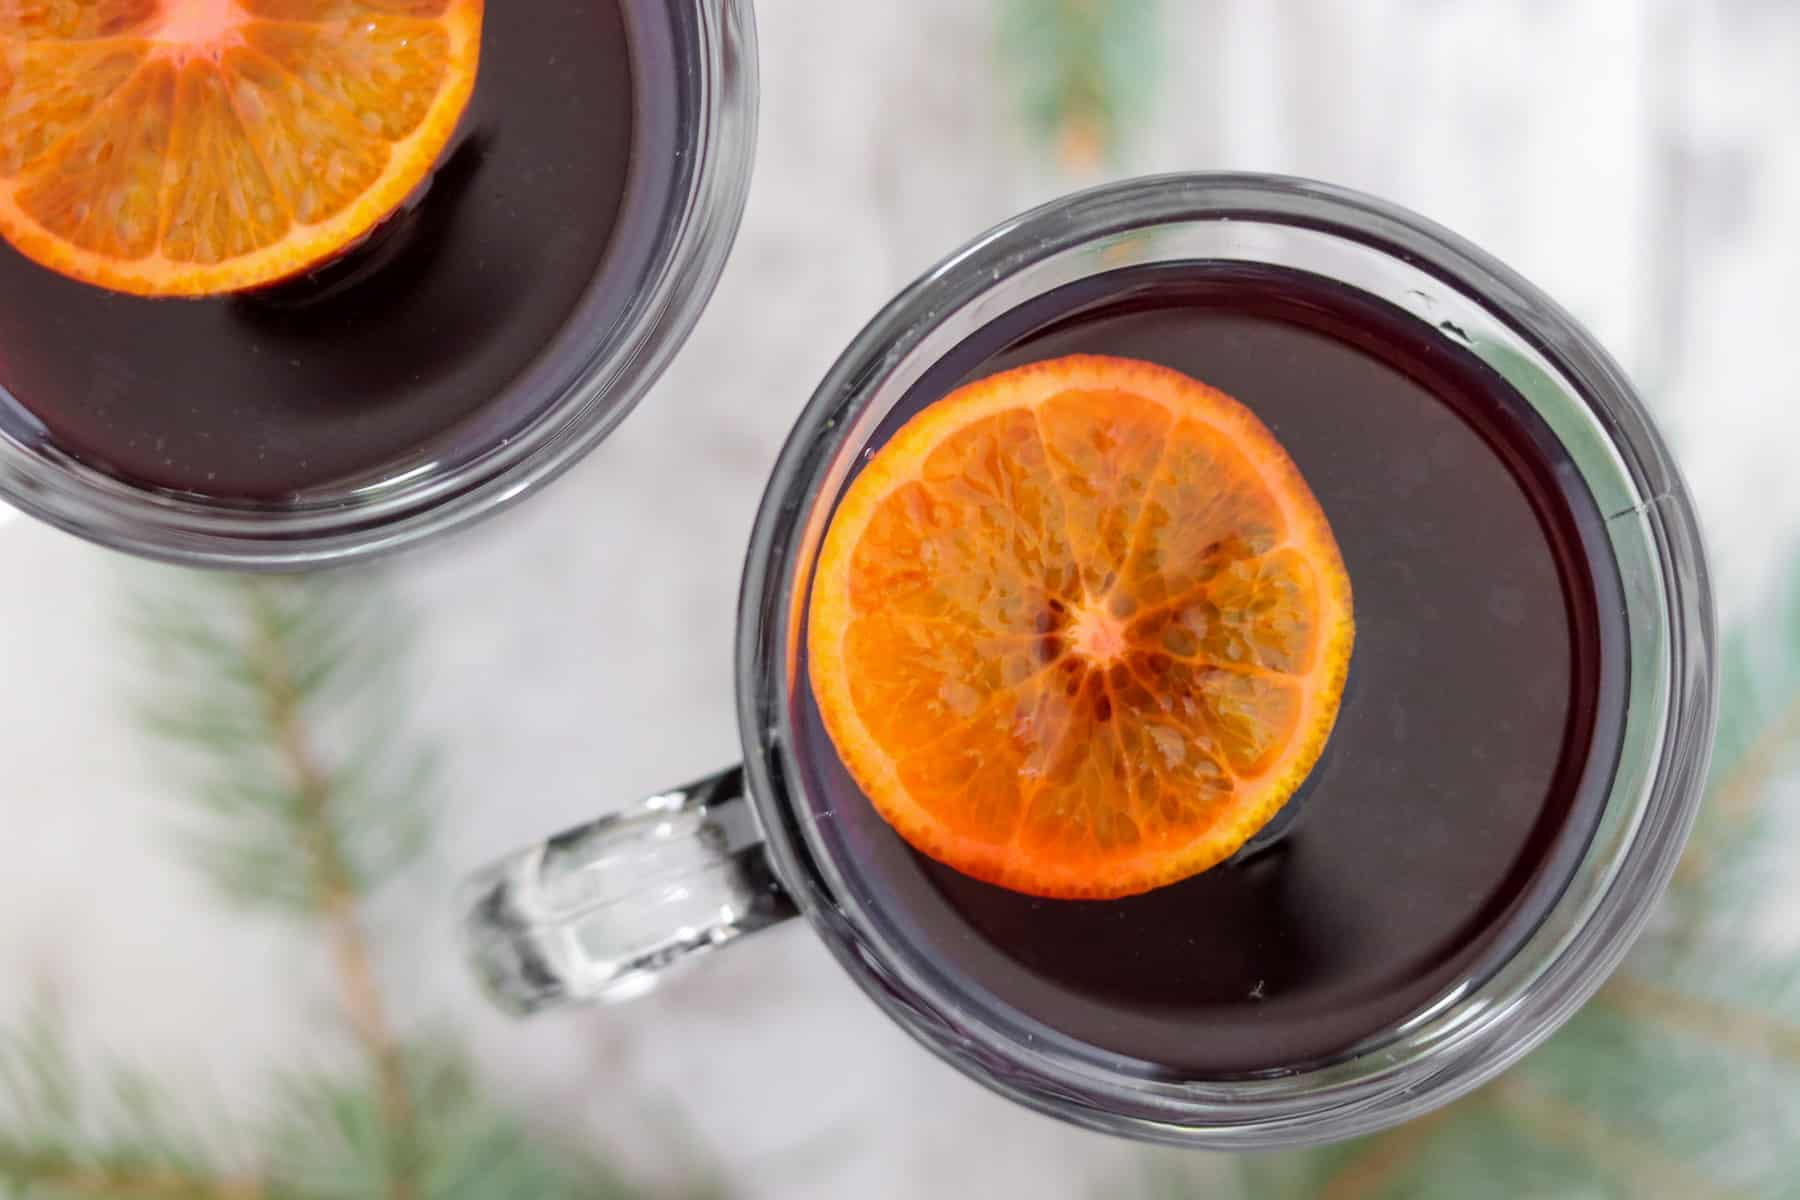 Close up of a cup of mulled wine with an orange slice floating on top.